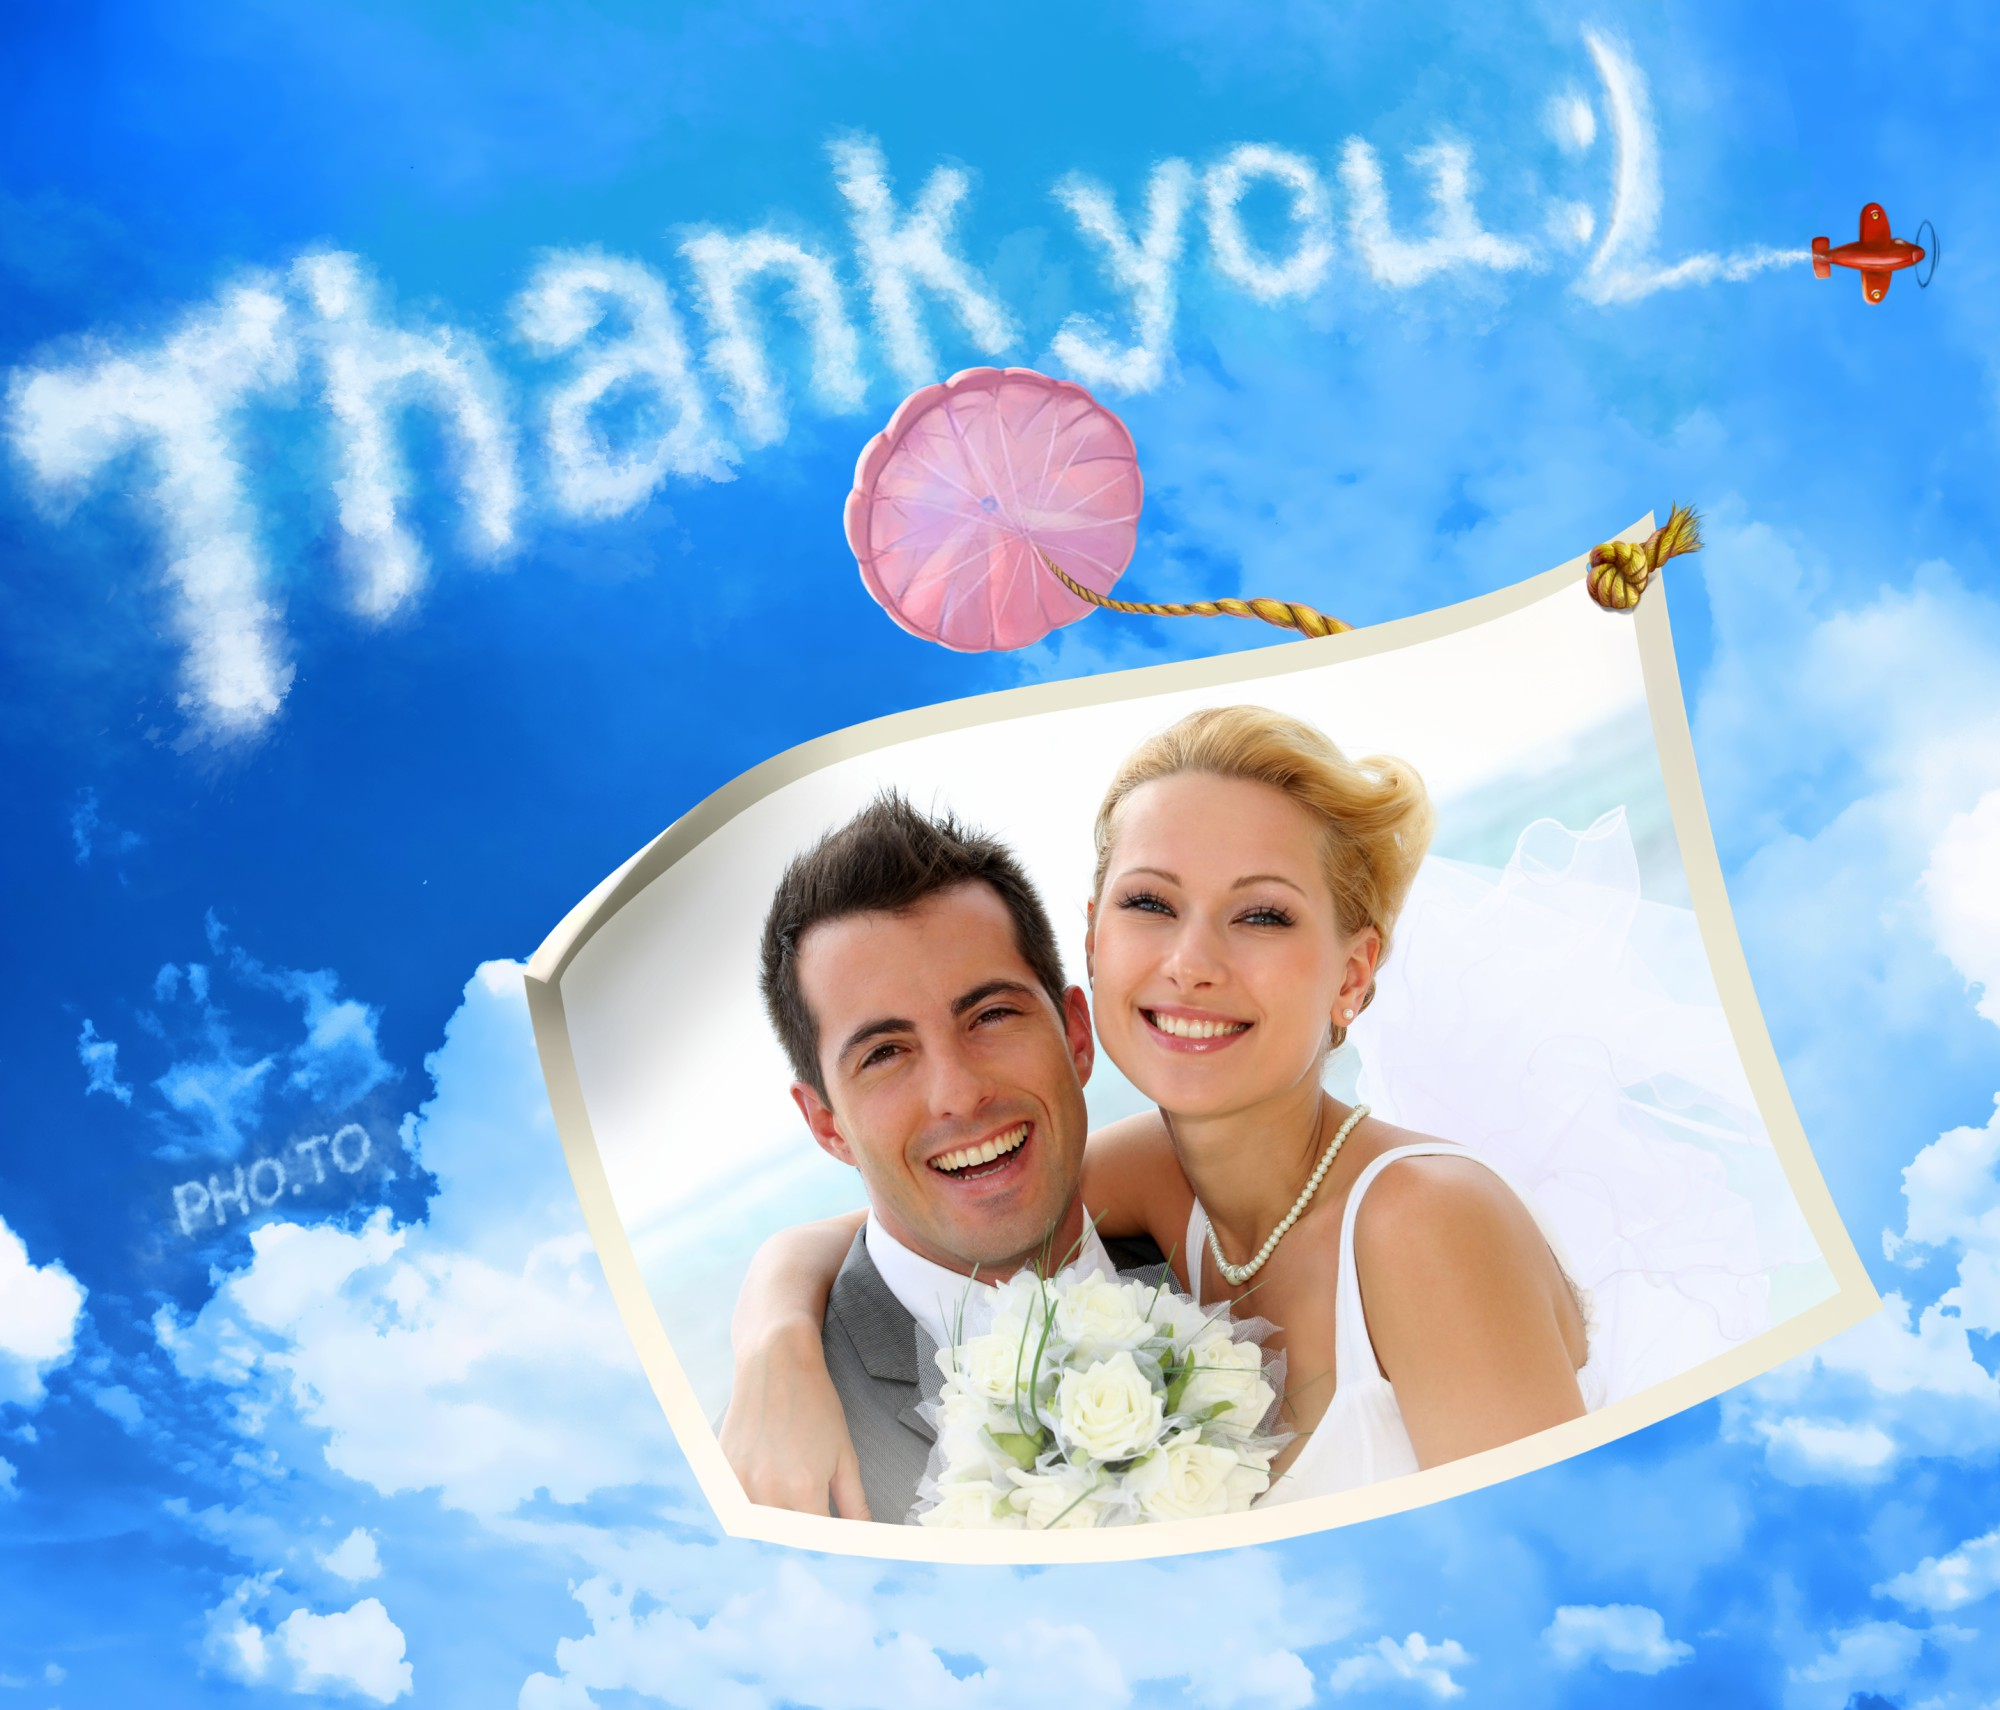 A wedding 'Thank you' photo card with happy newlyweds